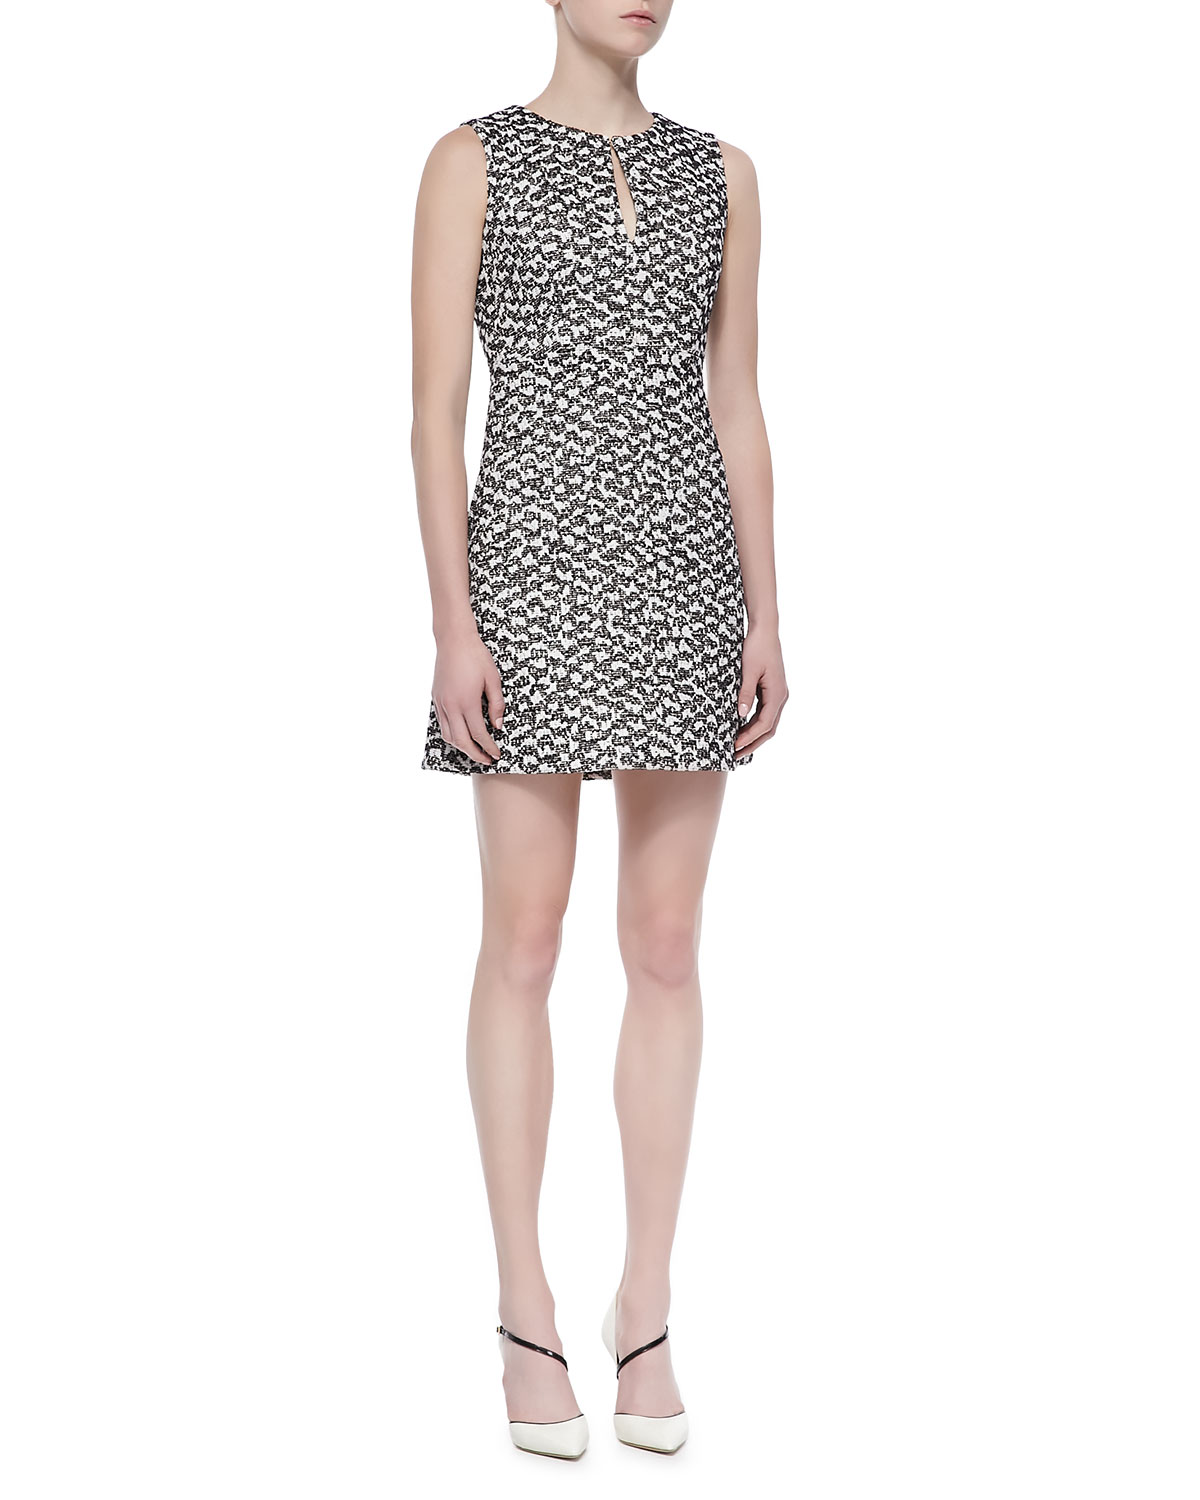 Diane von Furstenberg 'Yvette' Cotton Blend A-Line Dress